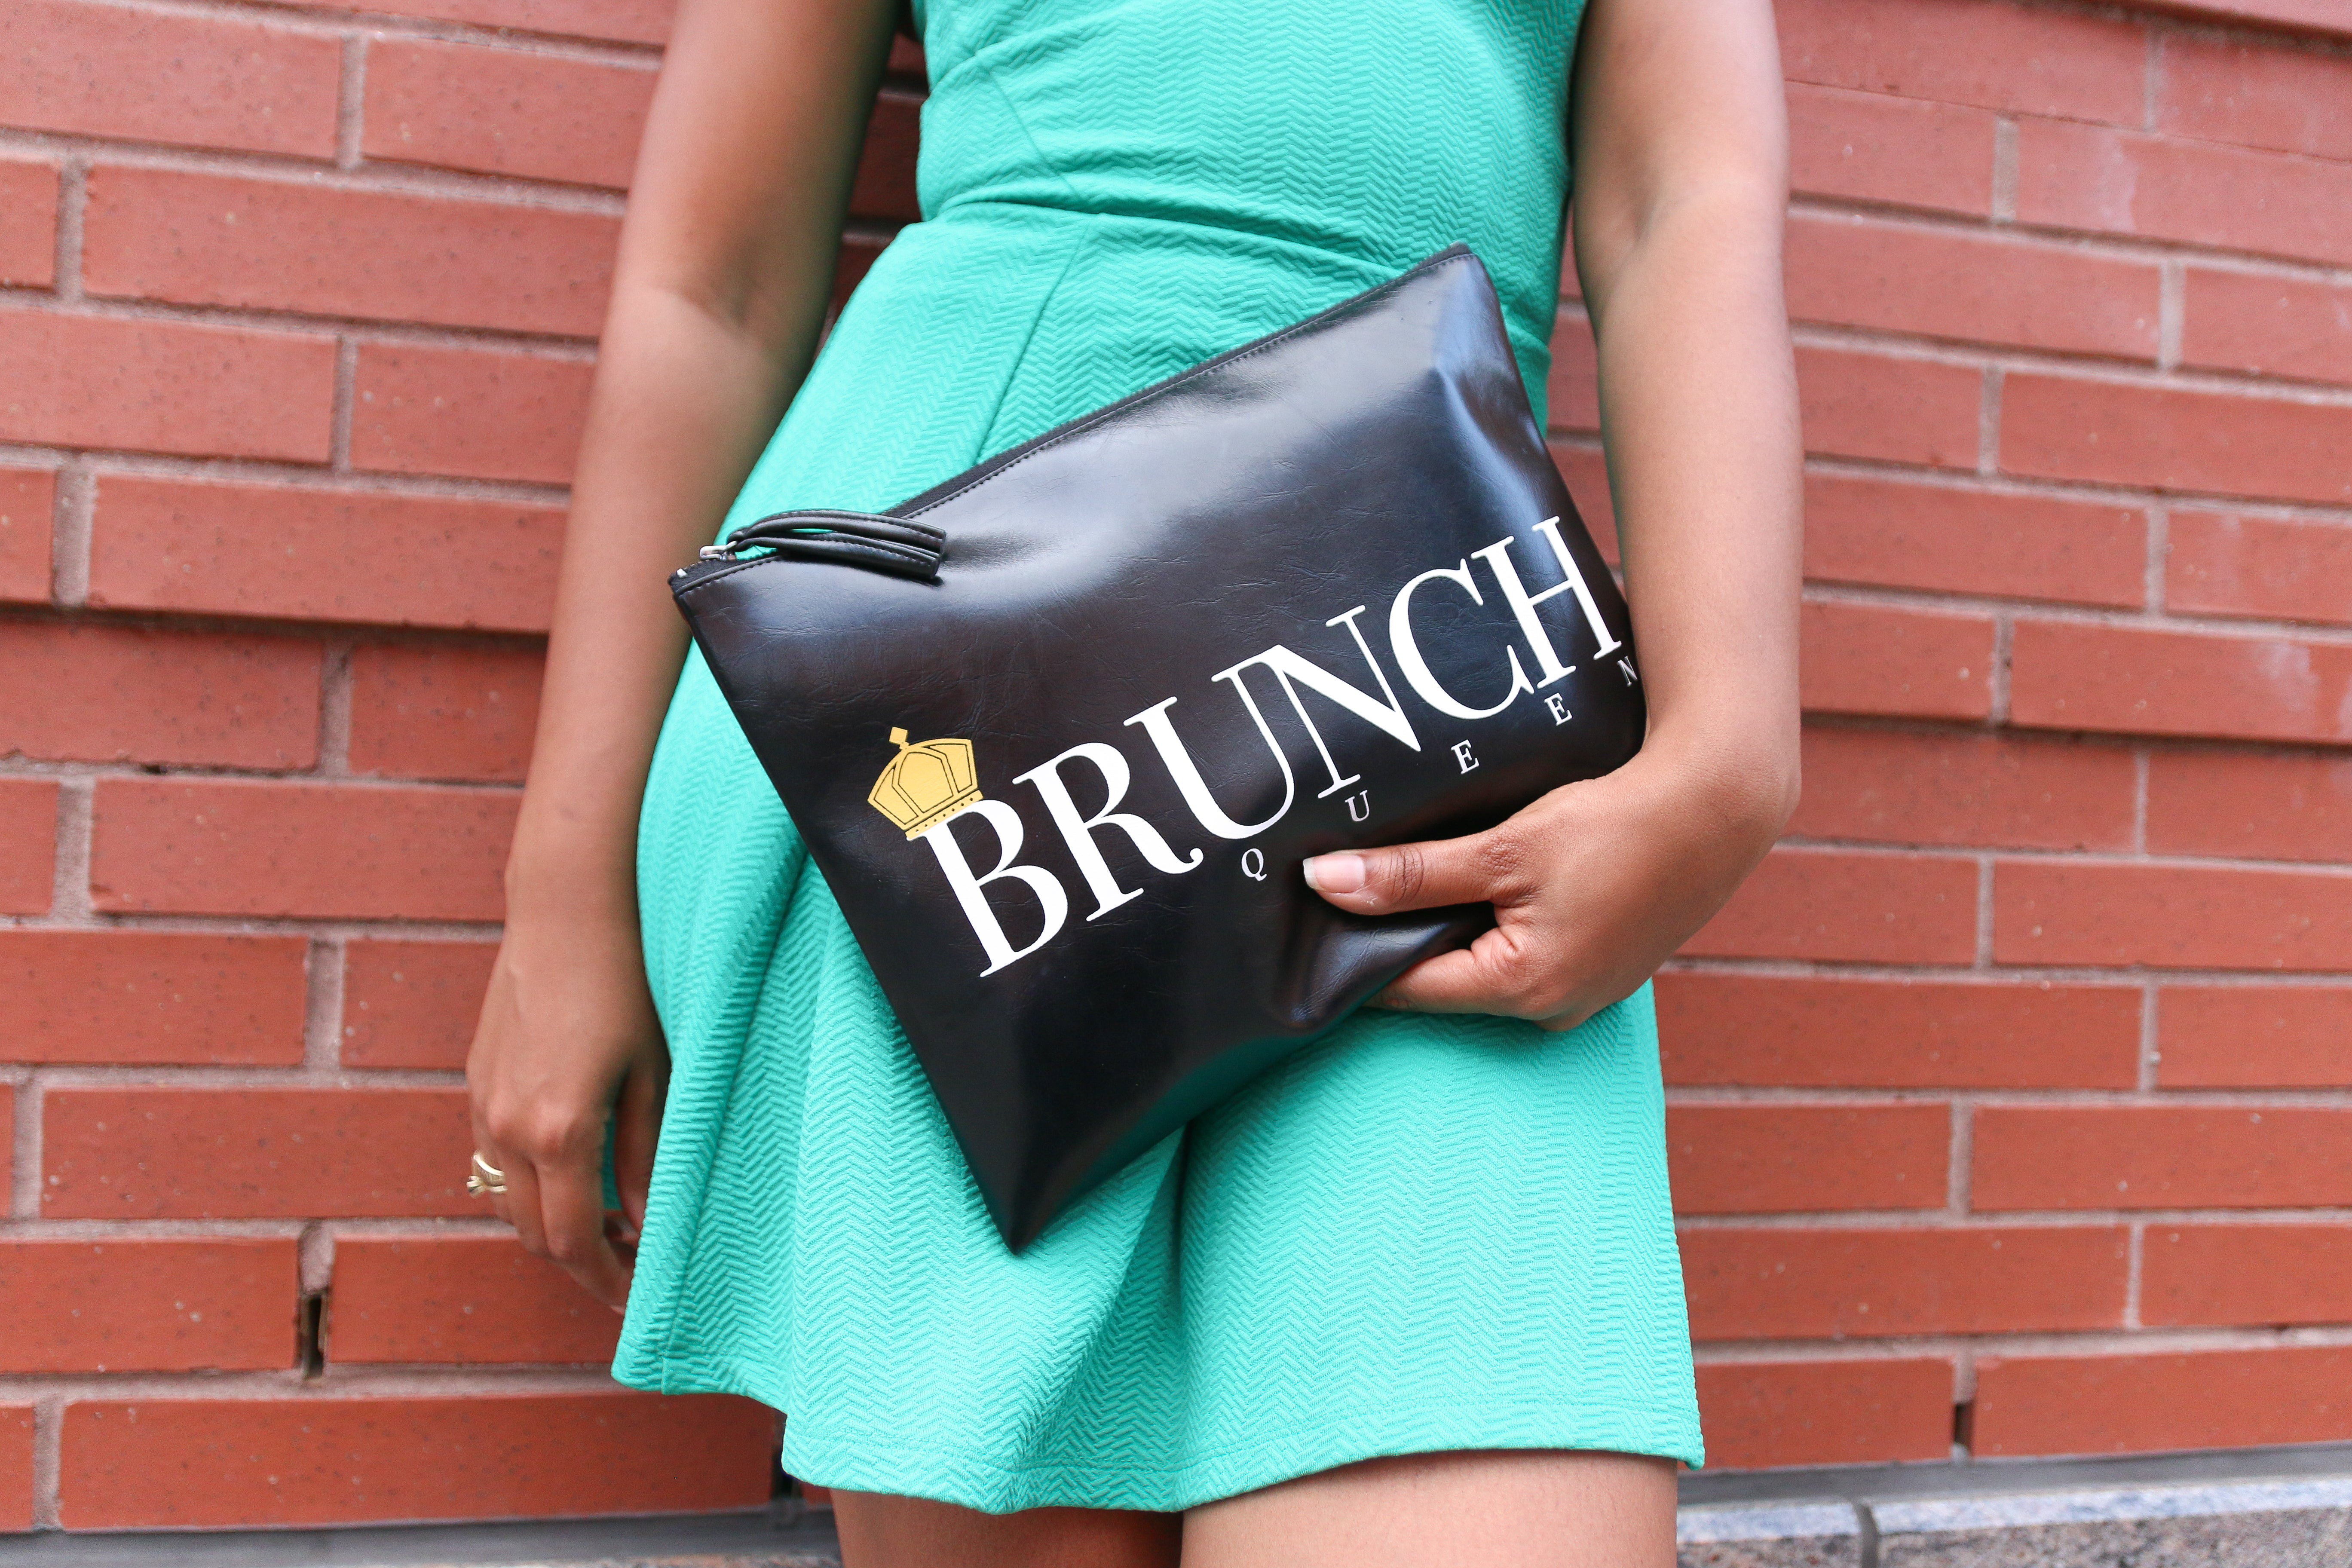 brunch-queen-clutch-purse-faux-leather